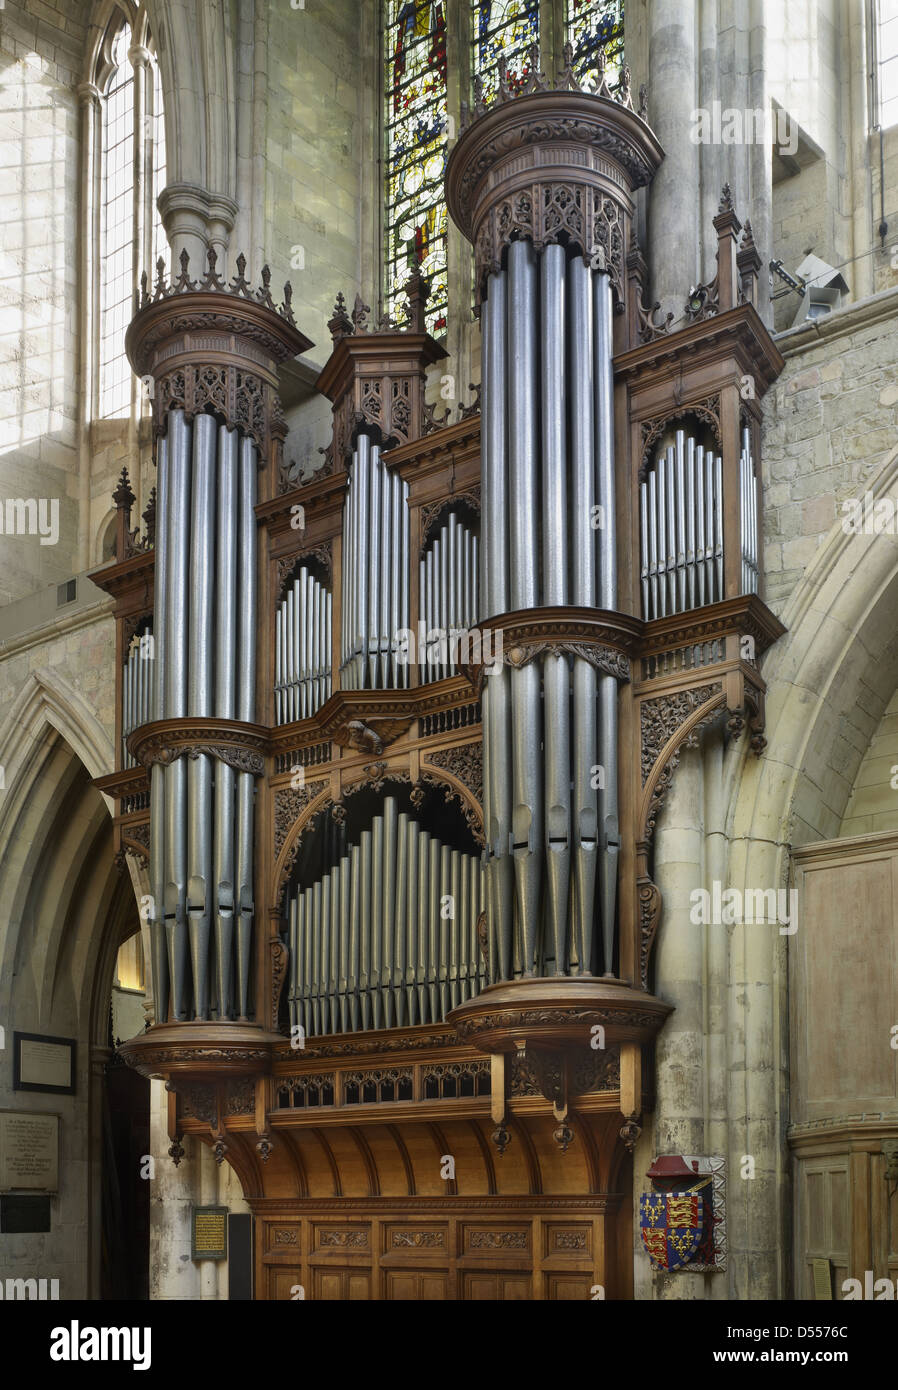 Southwark Cathedral organ - Stock Image